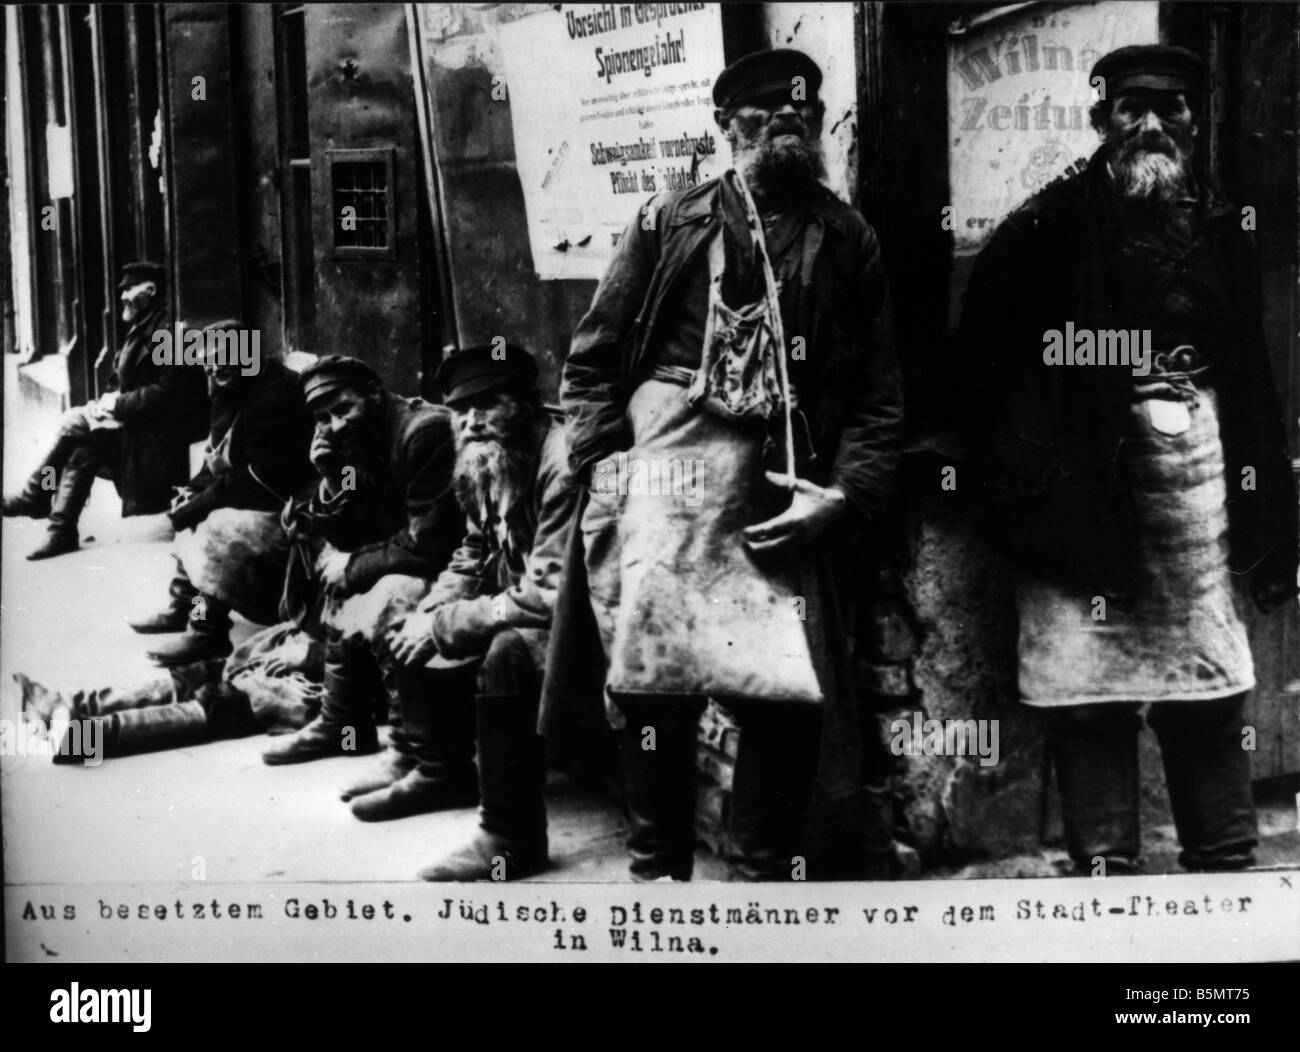 9IS 1915 0 0 A1 31 Jewish porters in Vilnius 1915 History of Judaism Eastern Jews From the occupied area Jewsish - Stock Image